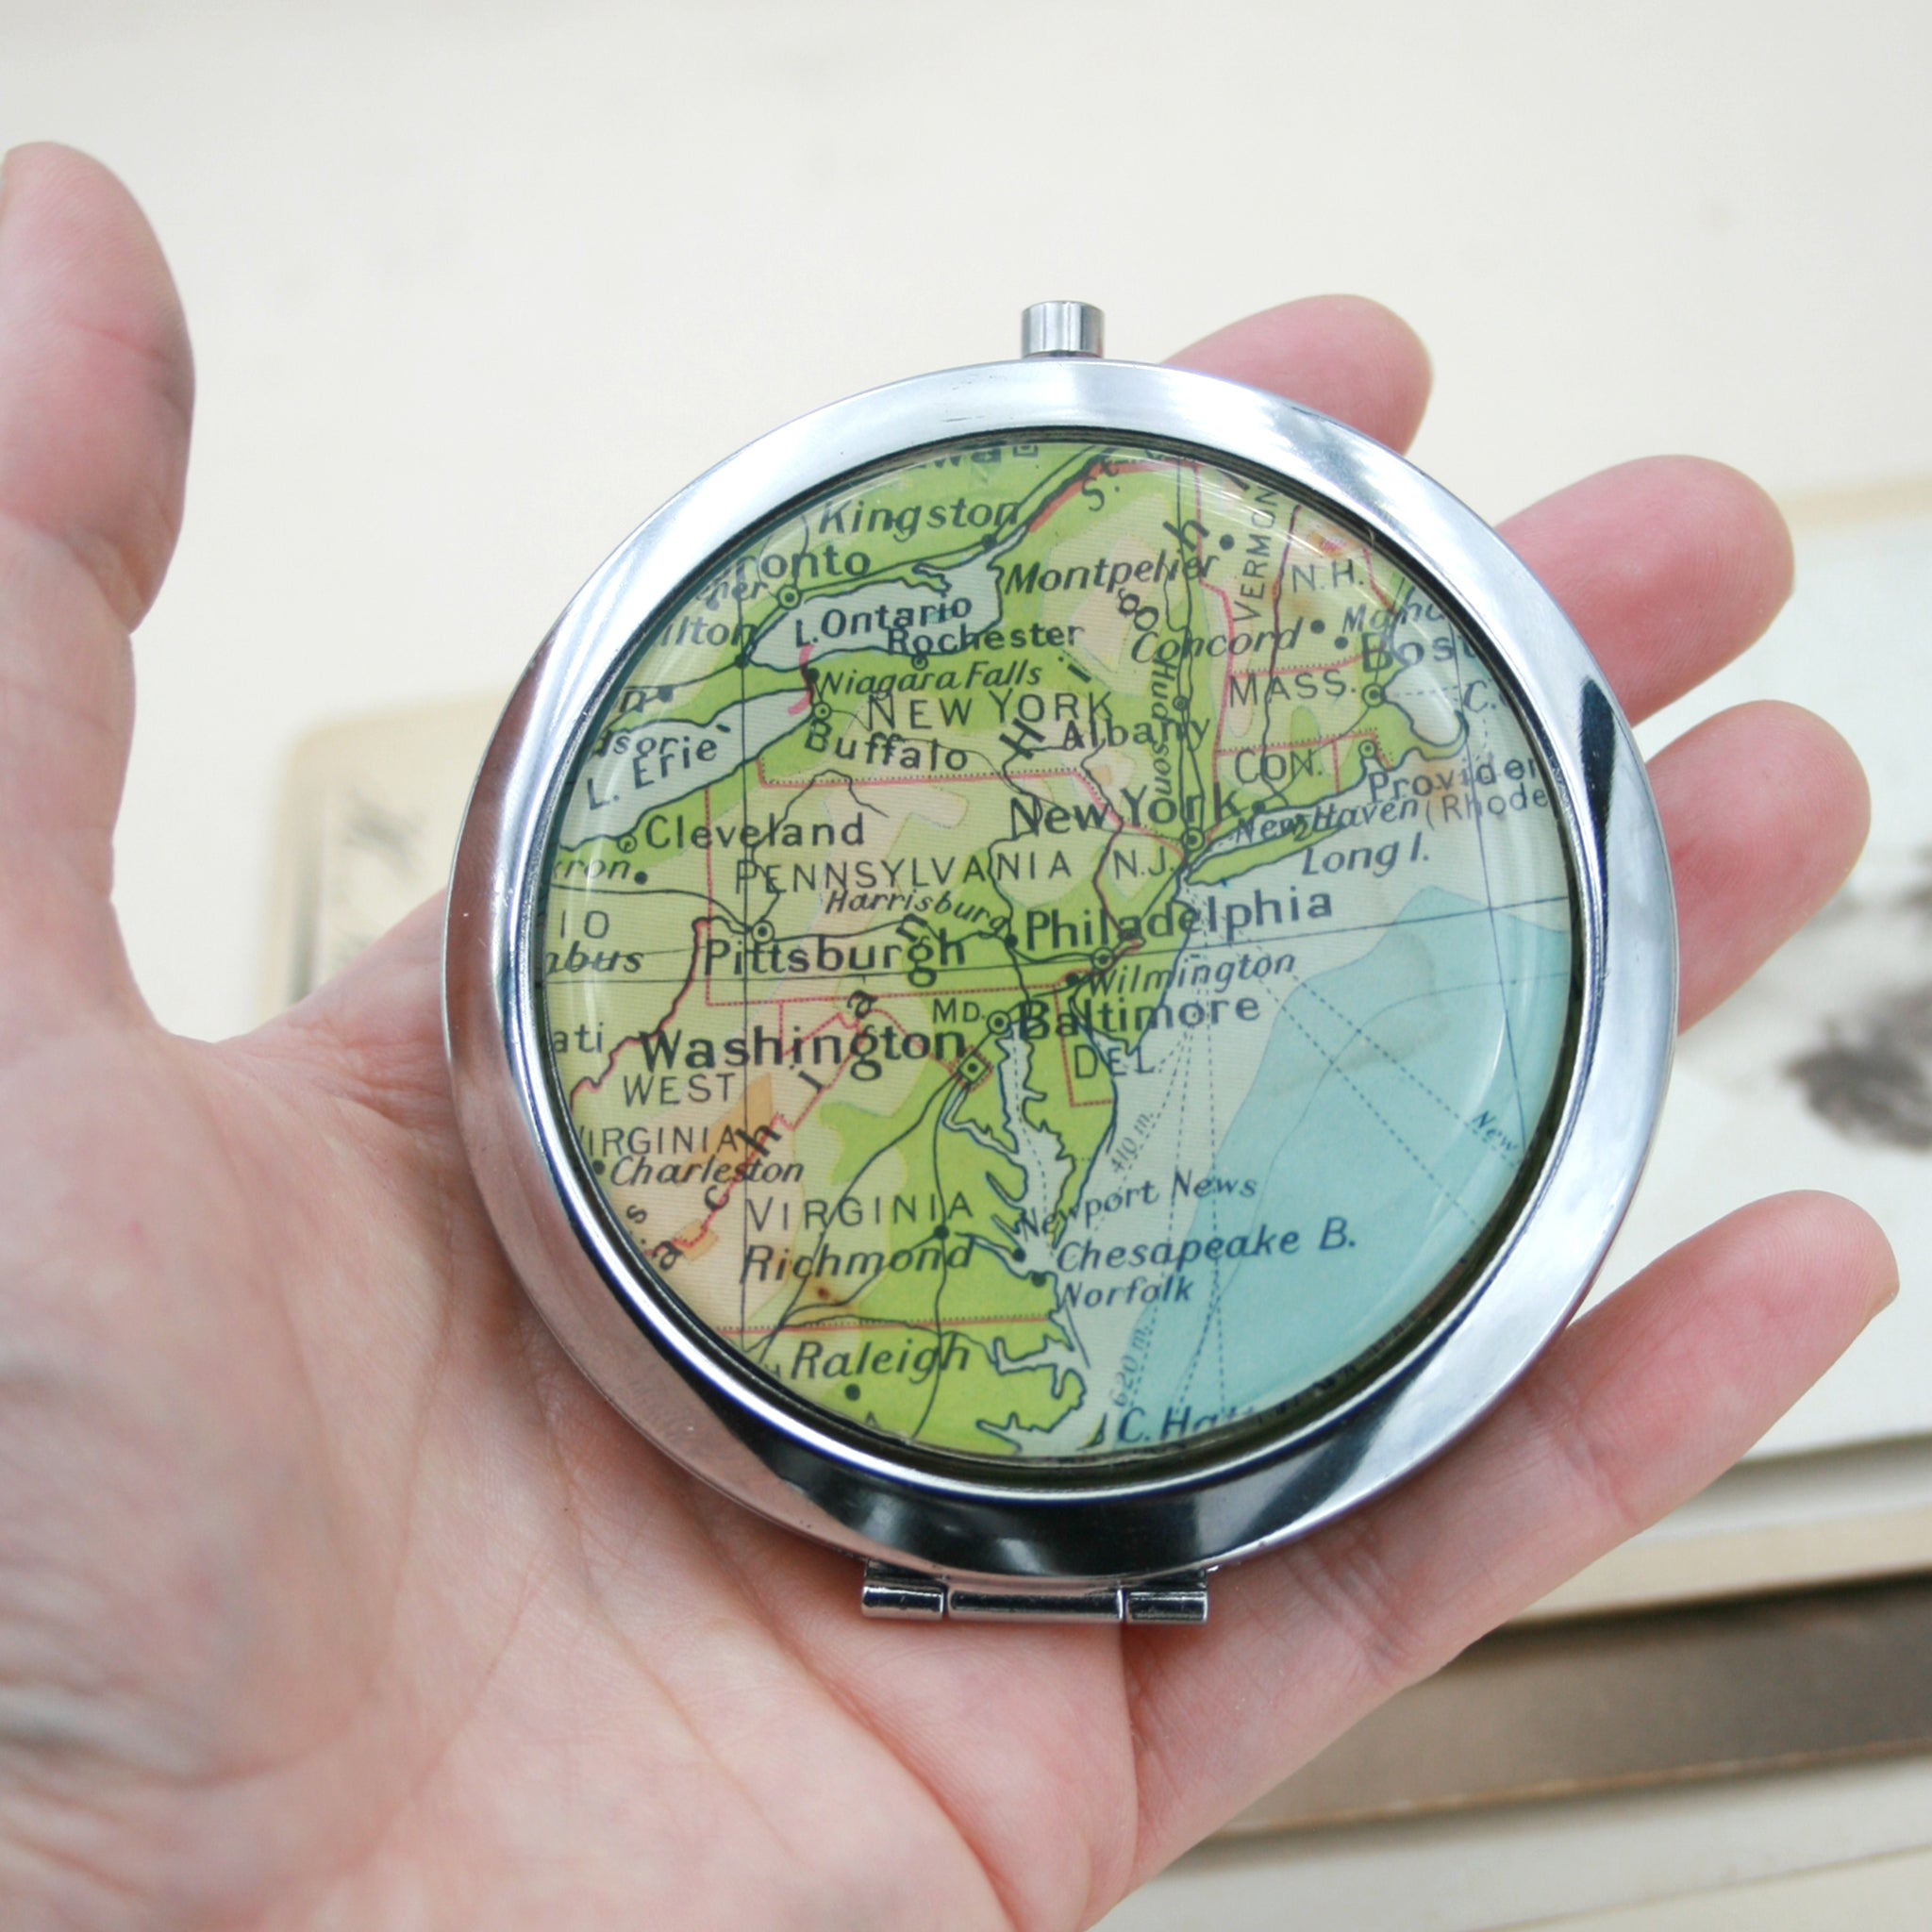 Hold in hand Personalised Compact Mirror in silver color featuring map of New York